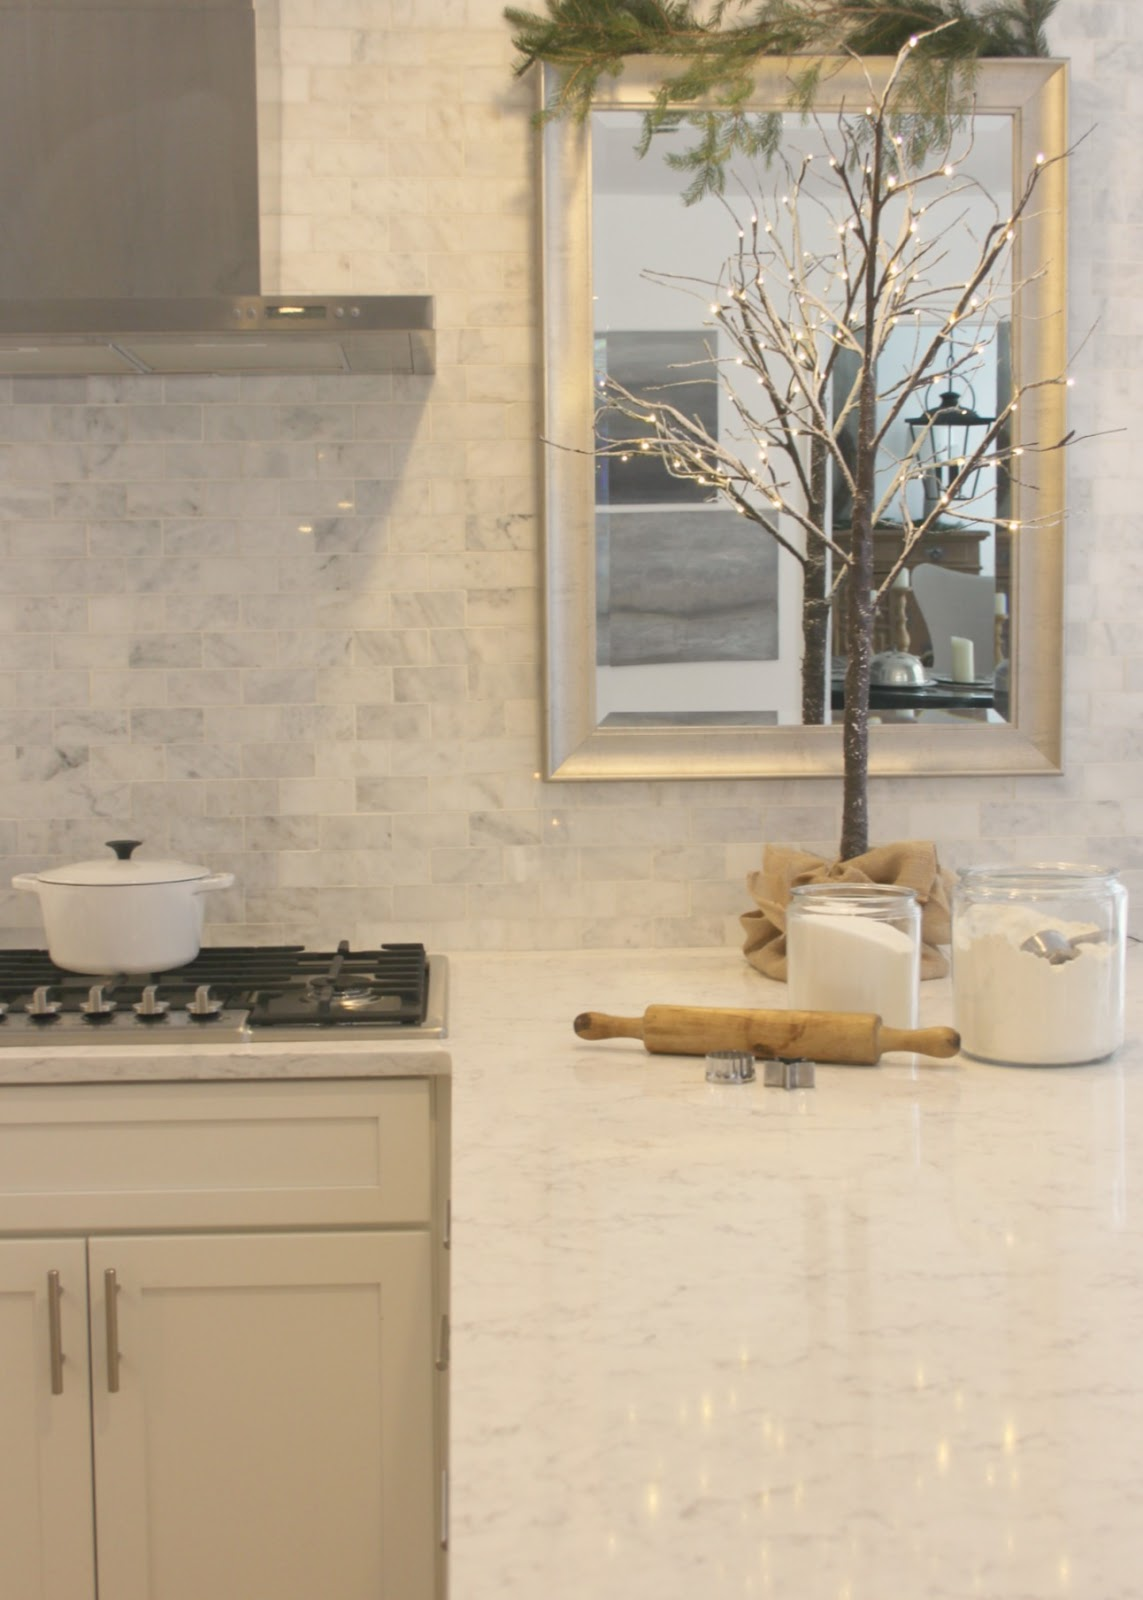 White kitchen with Minuet Viatera quartz countertop, mirror, and Christmas decor. Come be calmed by How to Freak Less About Holidays, Decorating and Gifts as well as Entertaining.